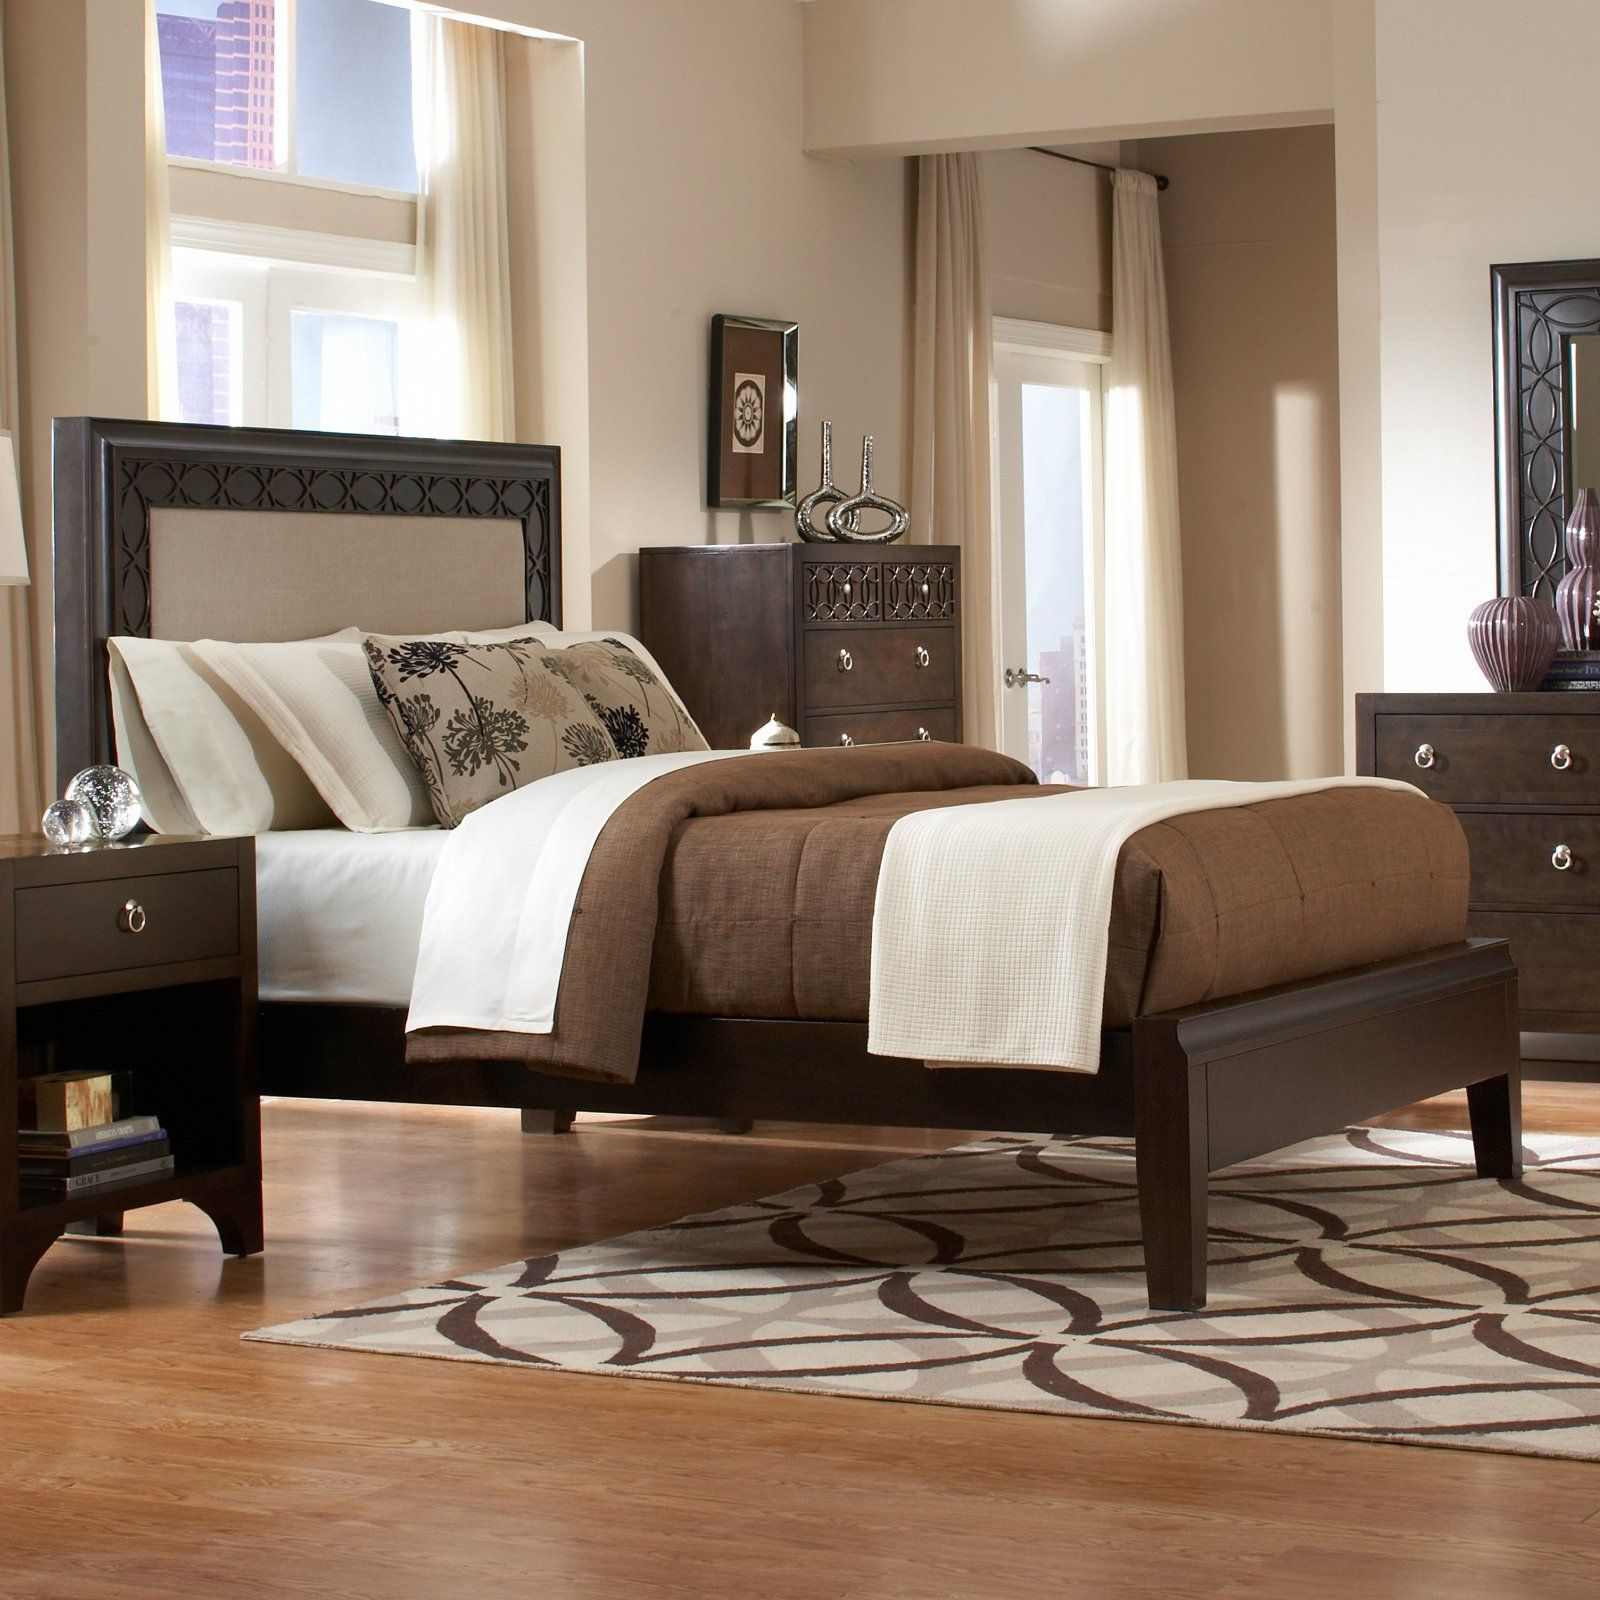 Martin Home Furnishings Ellipse Panel Bed  From Hayneedle  Redecorate Bedroom Bedroom